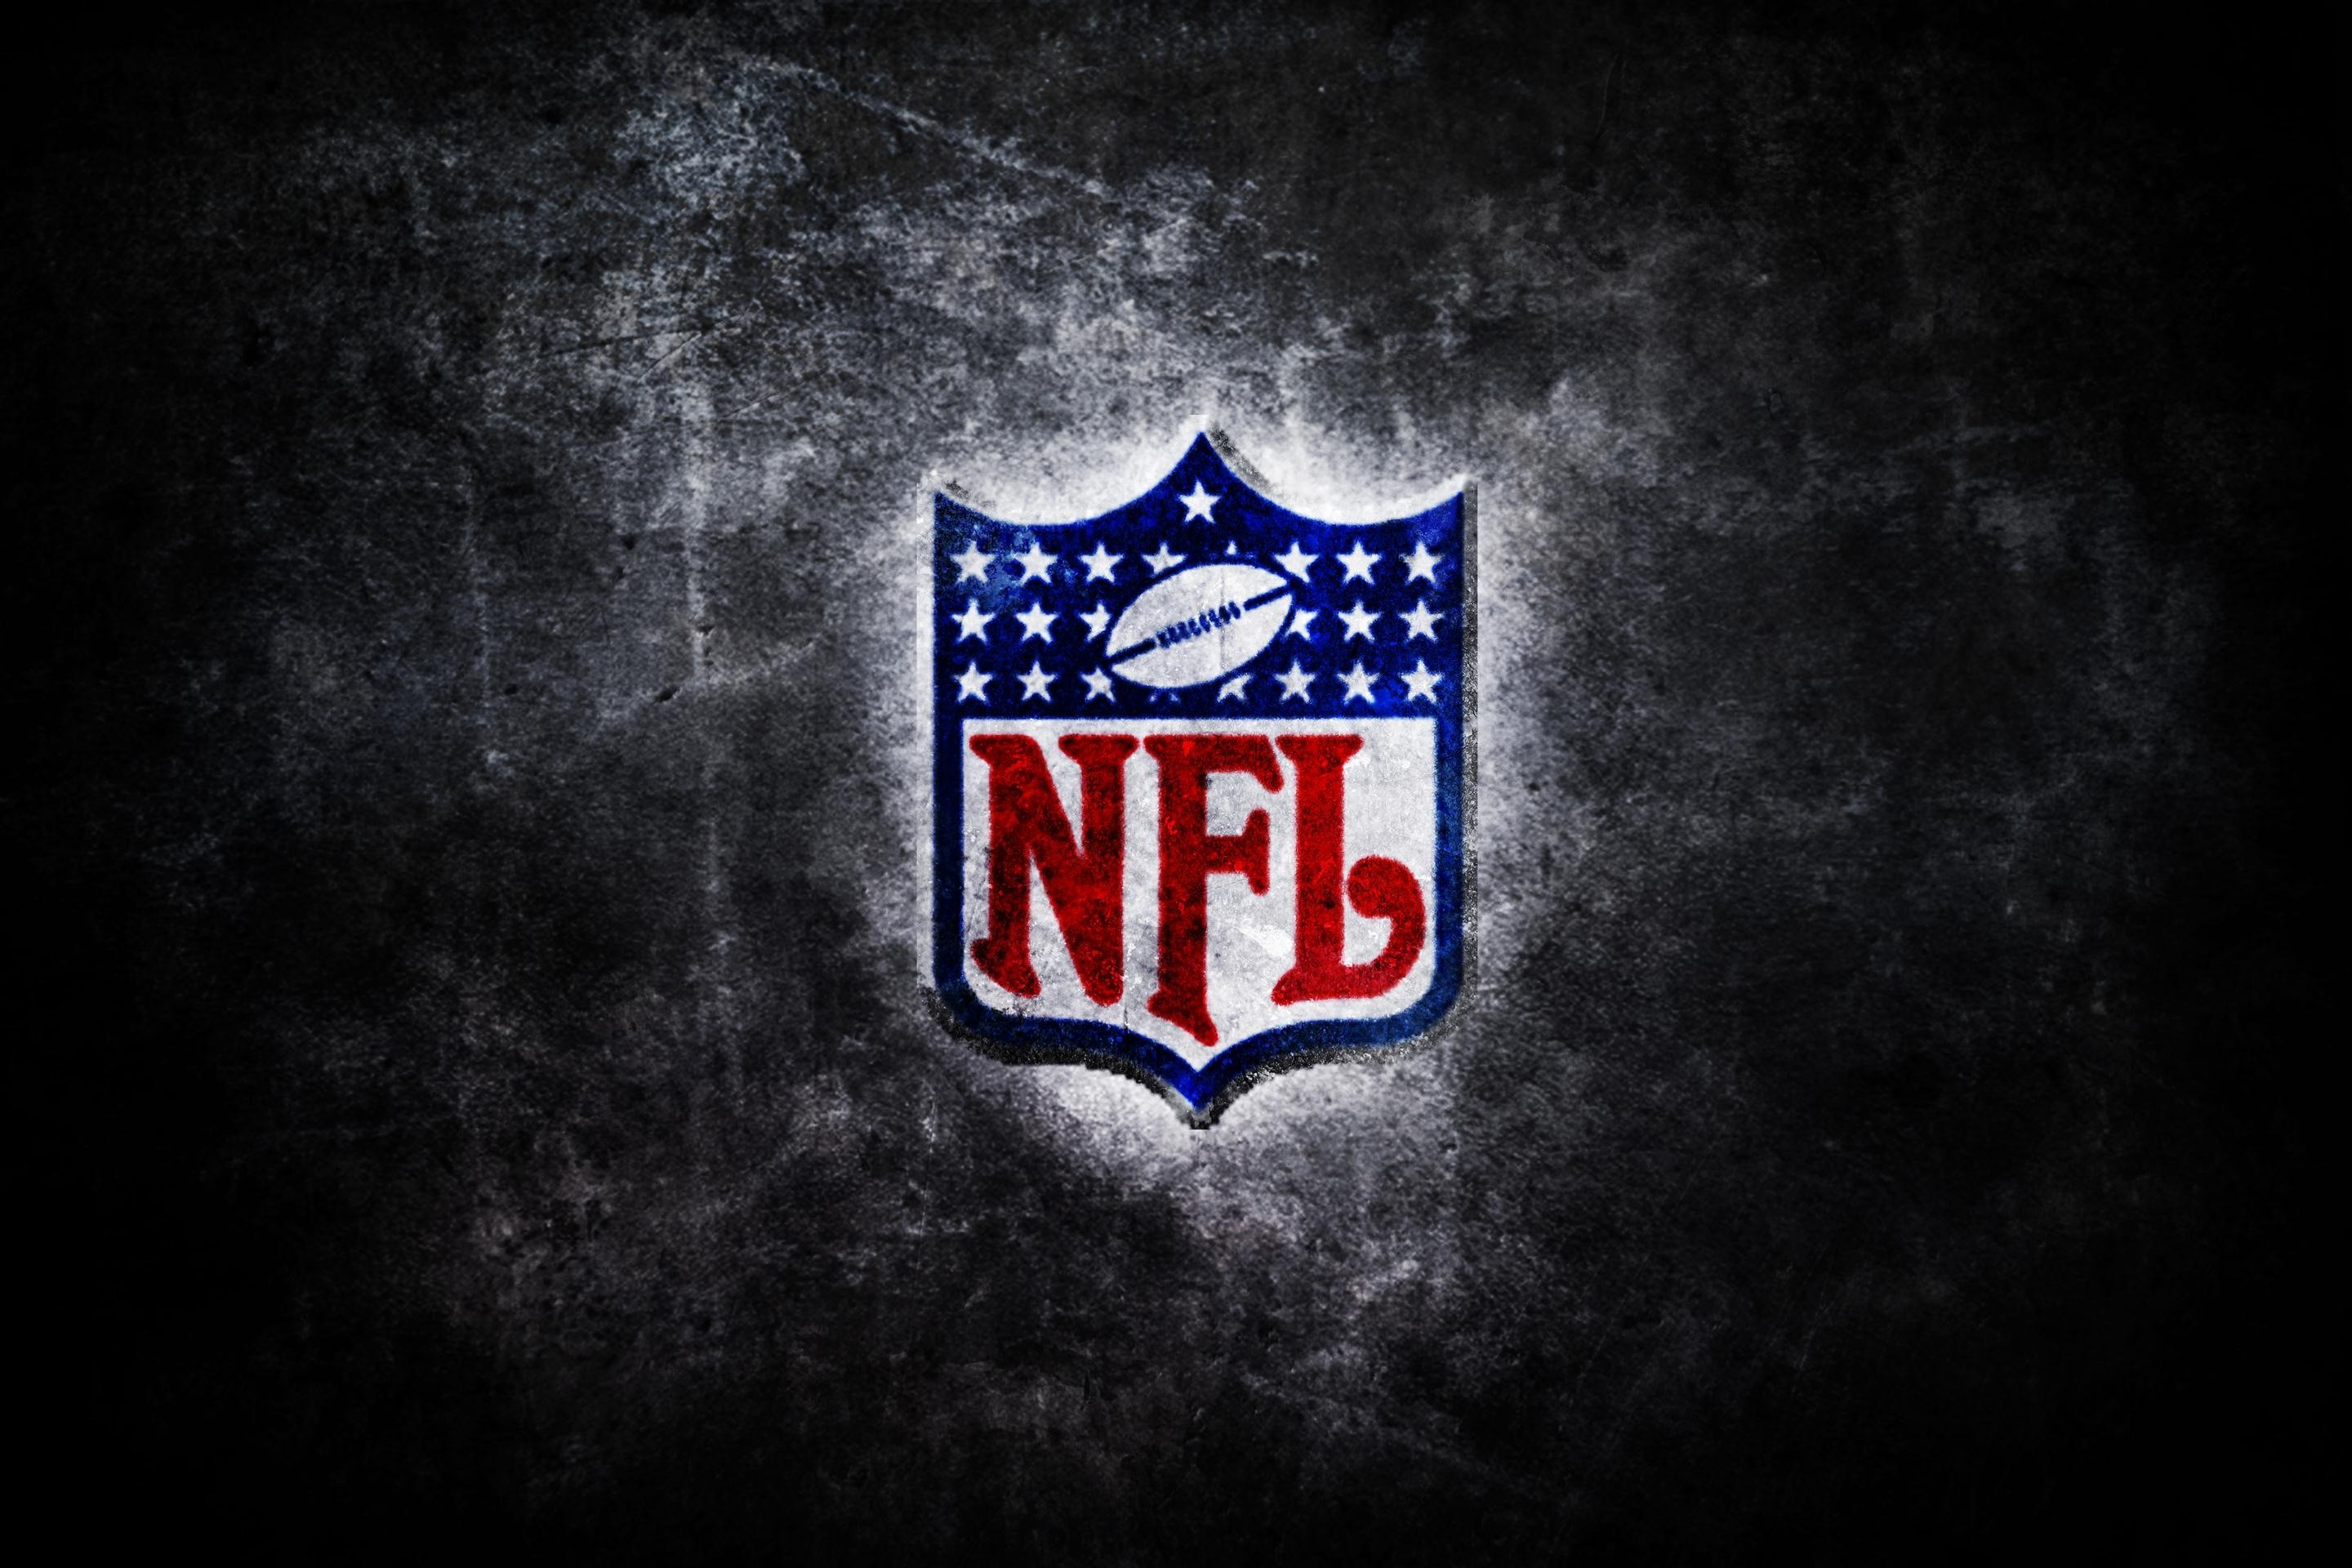 2880x1920 NFL HD Wallpapers